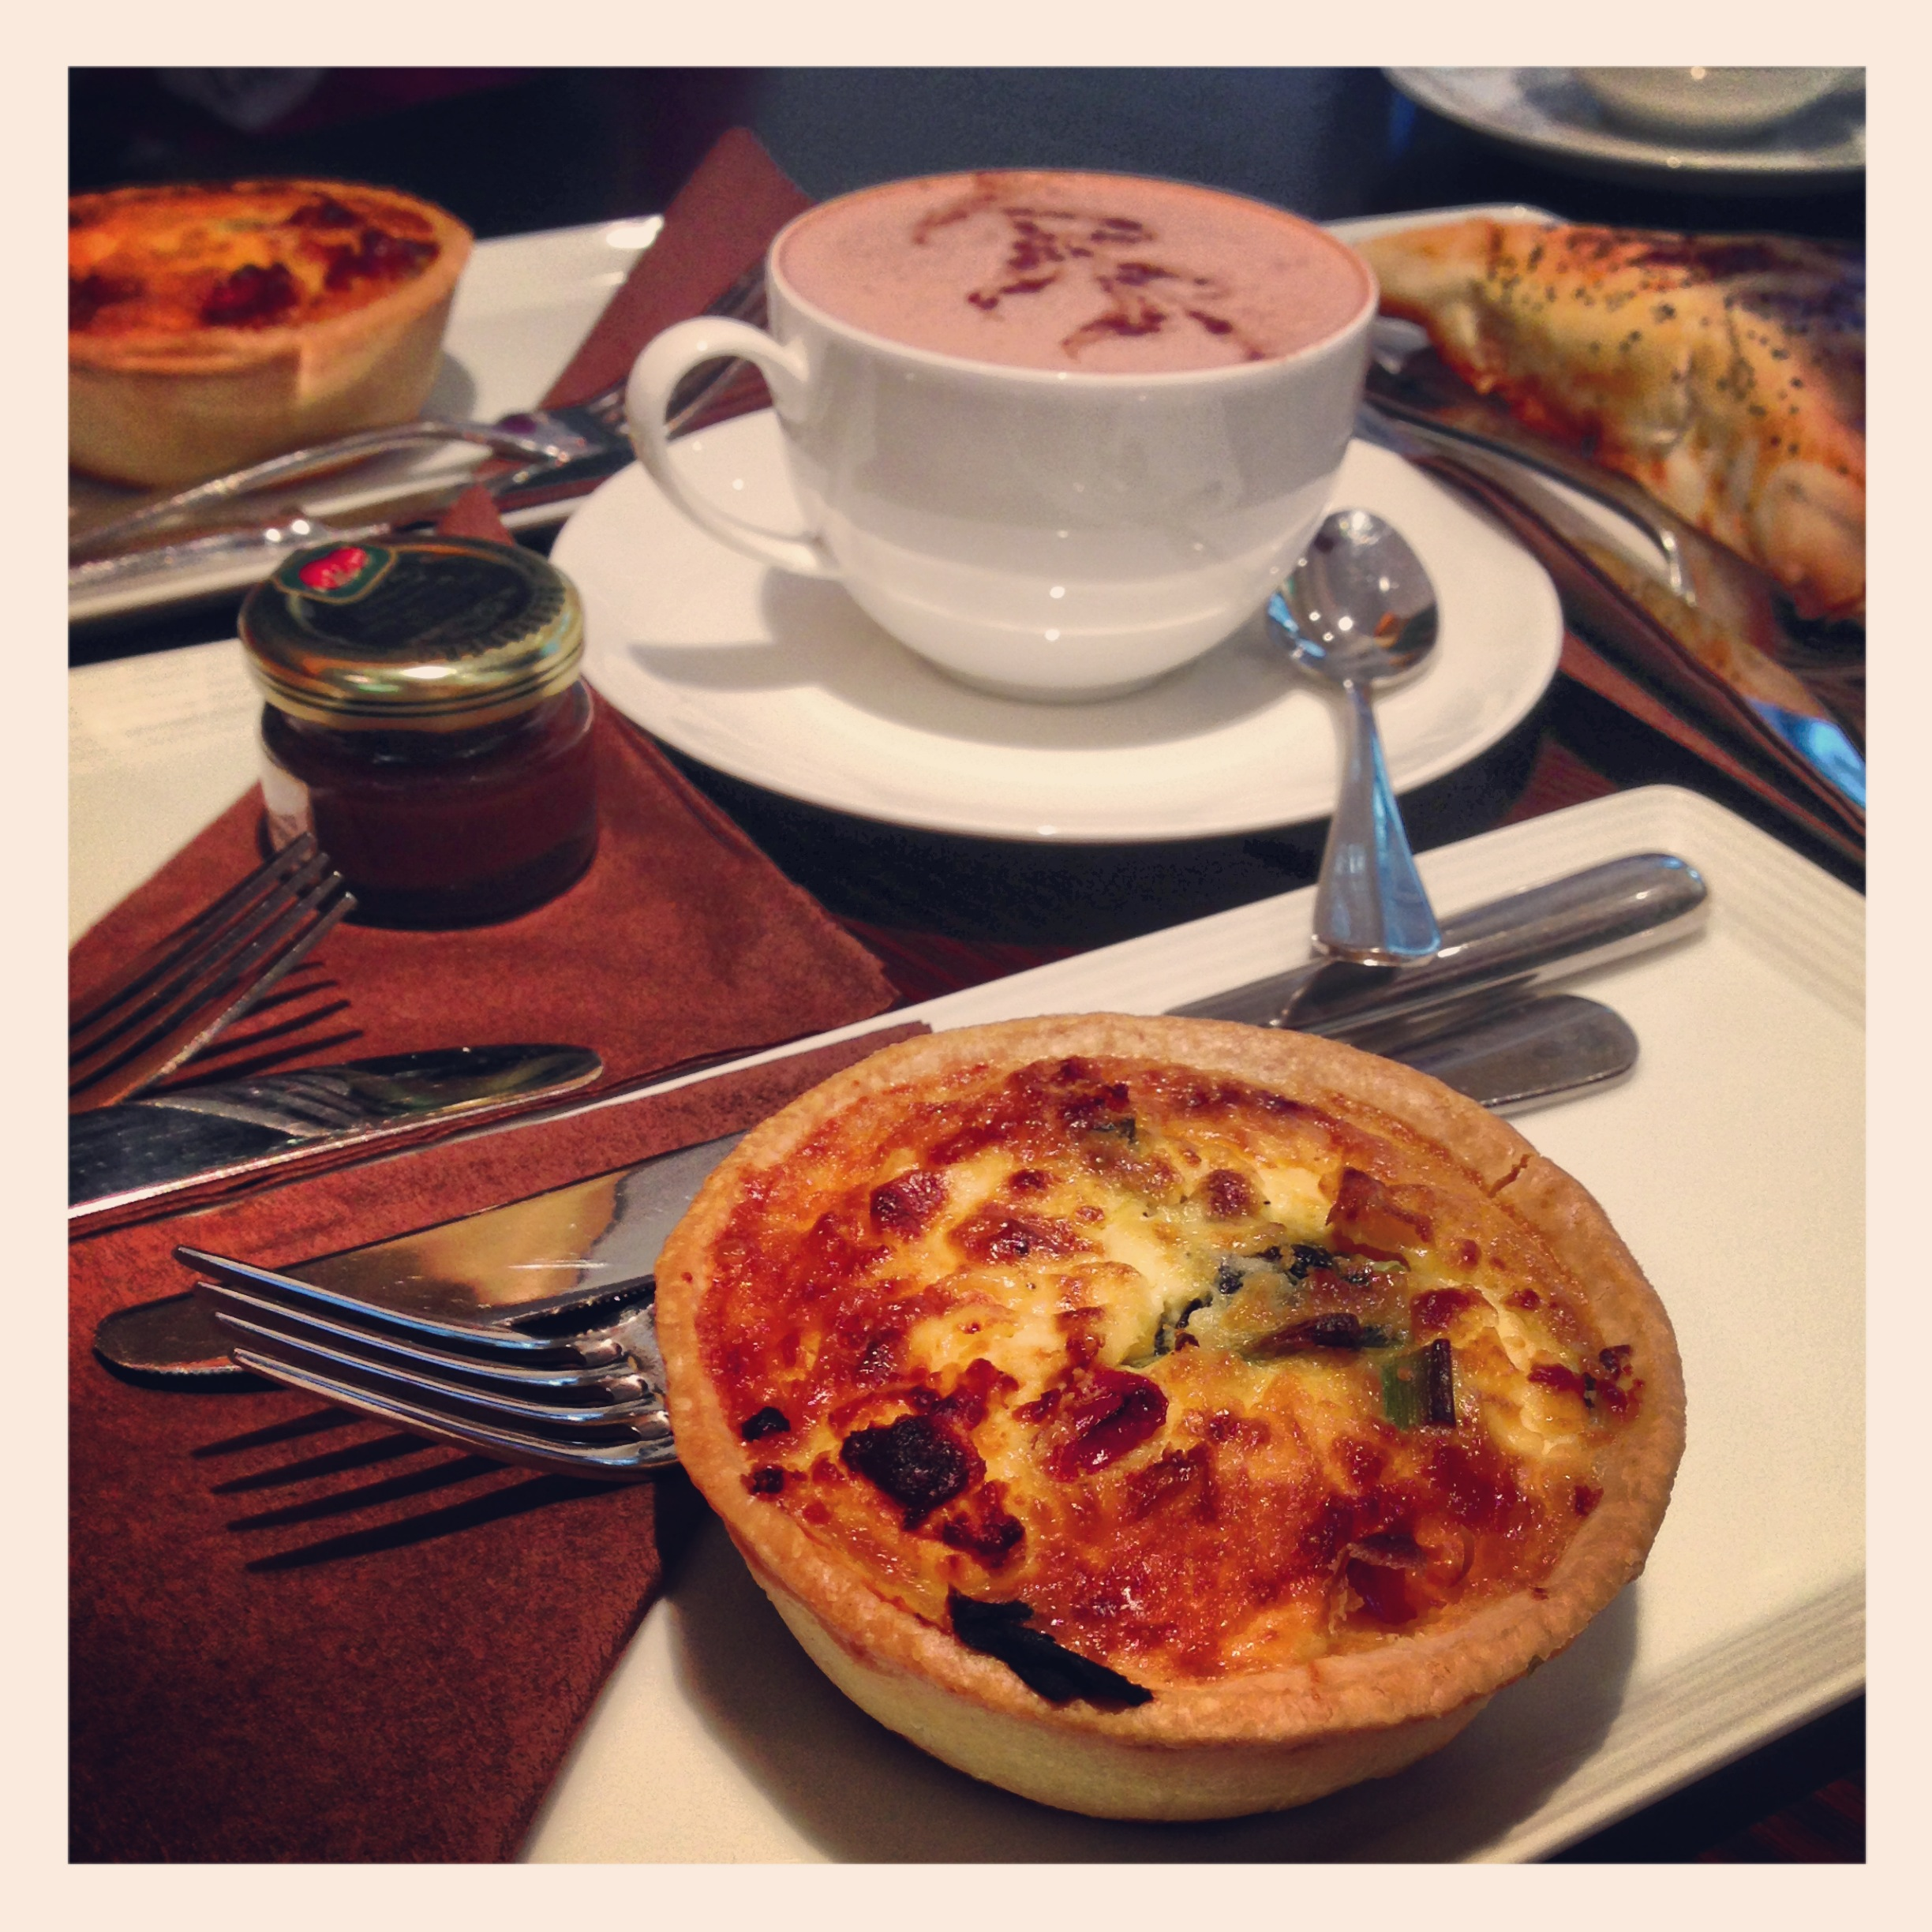 Baileys Dark Hot Chocolate & Quiche Lorraine at Le Petit Gateau